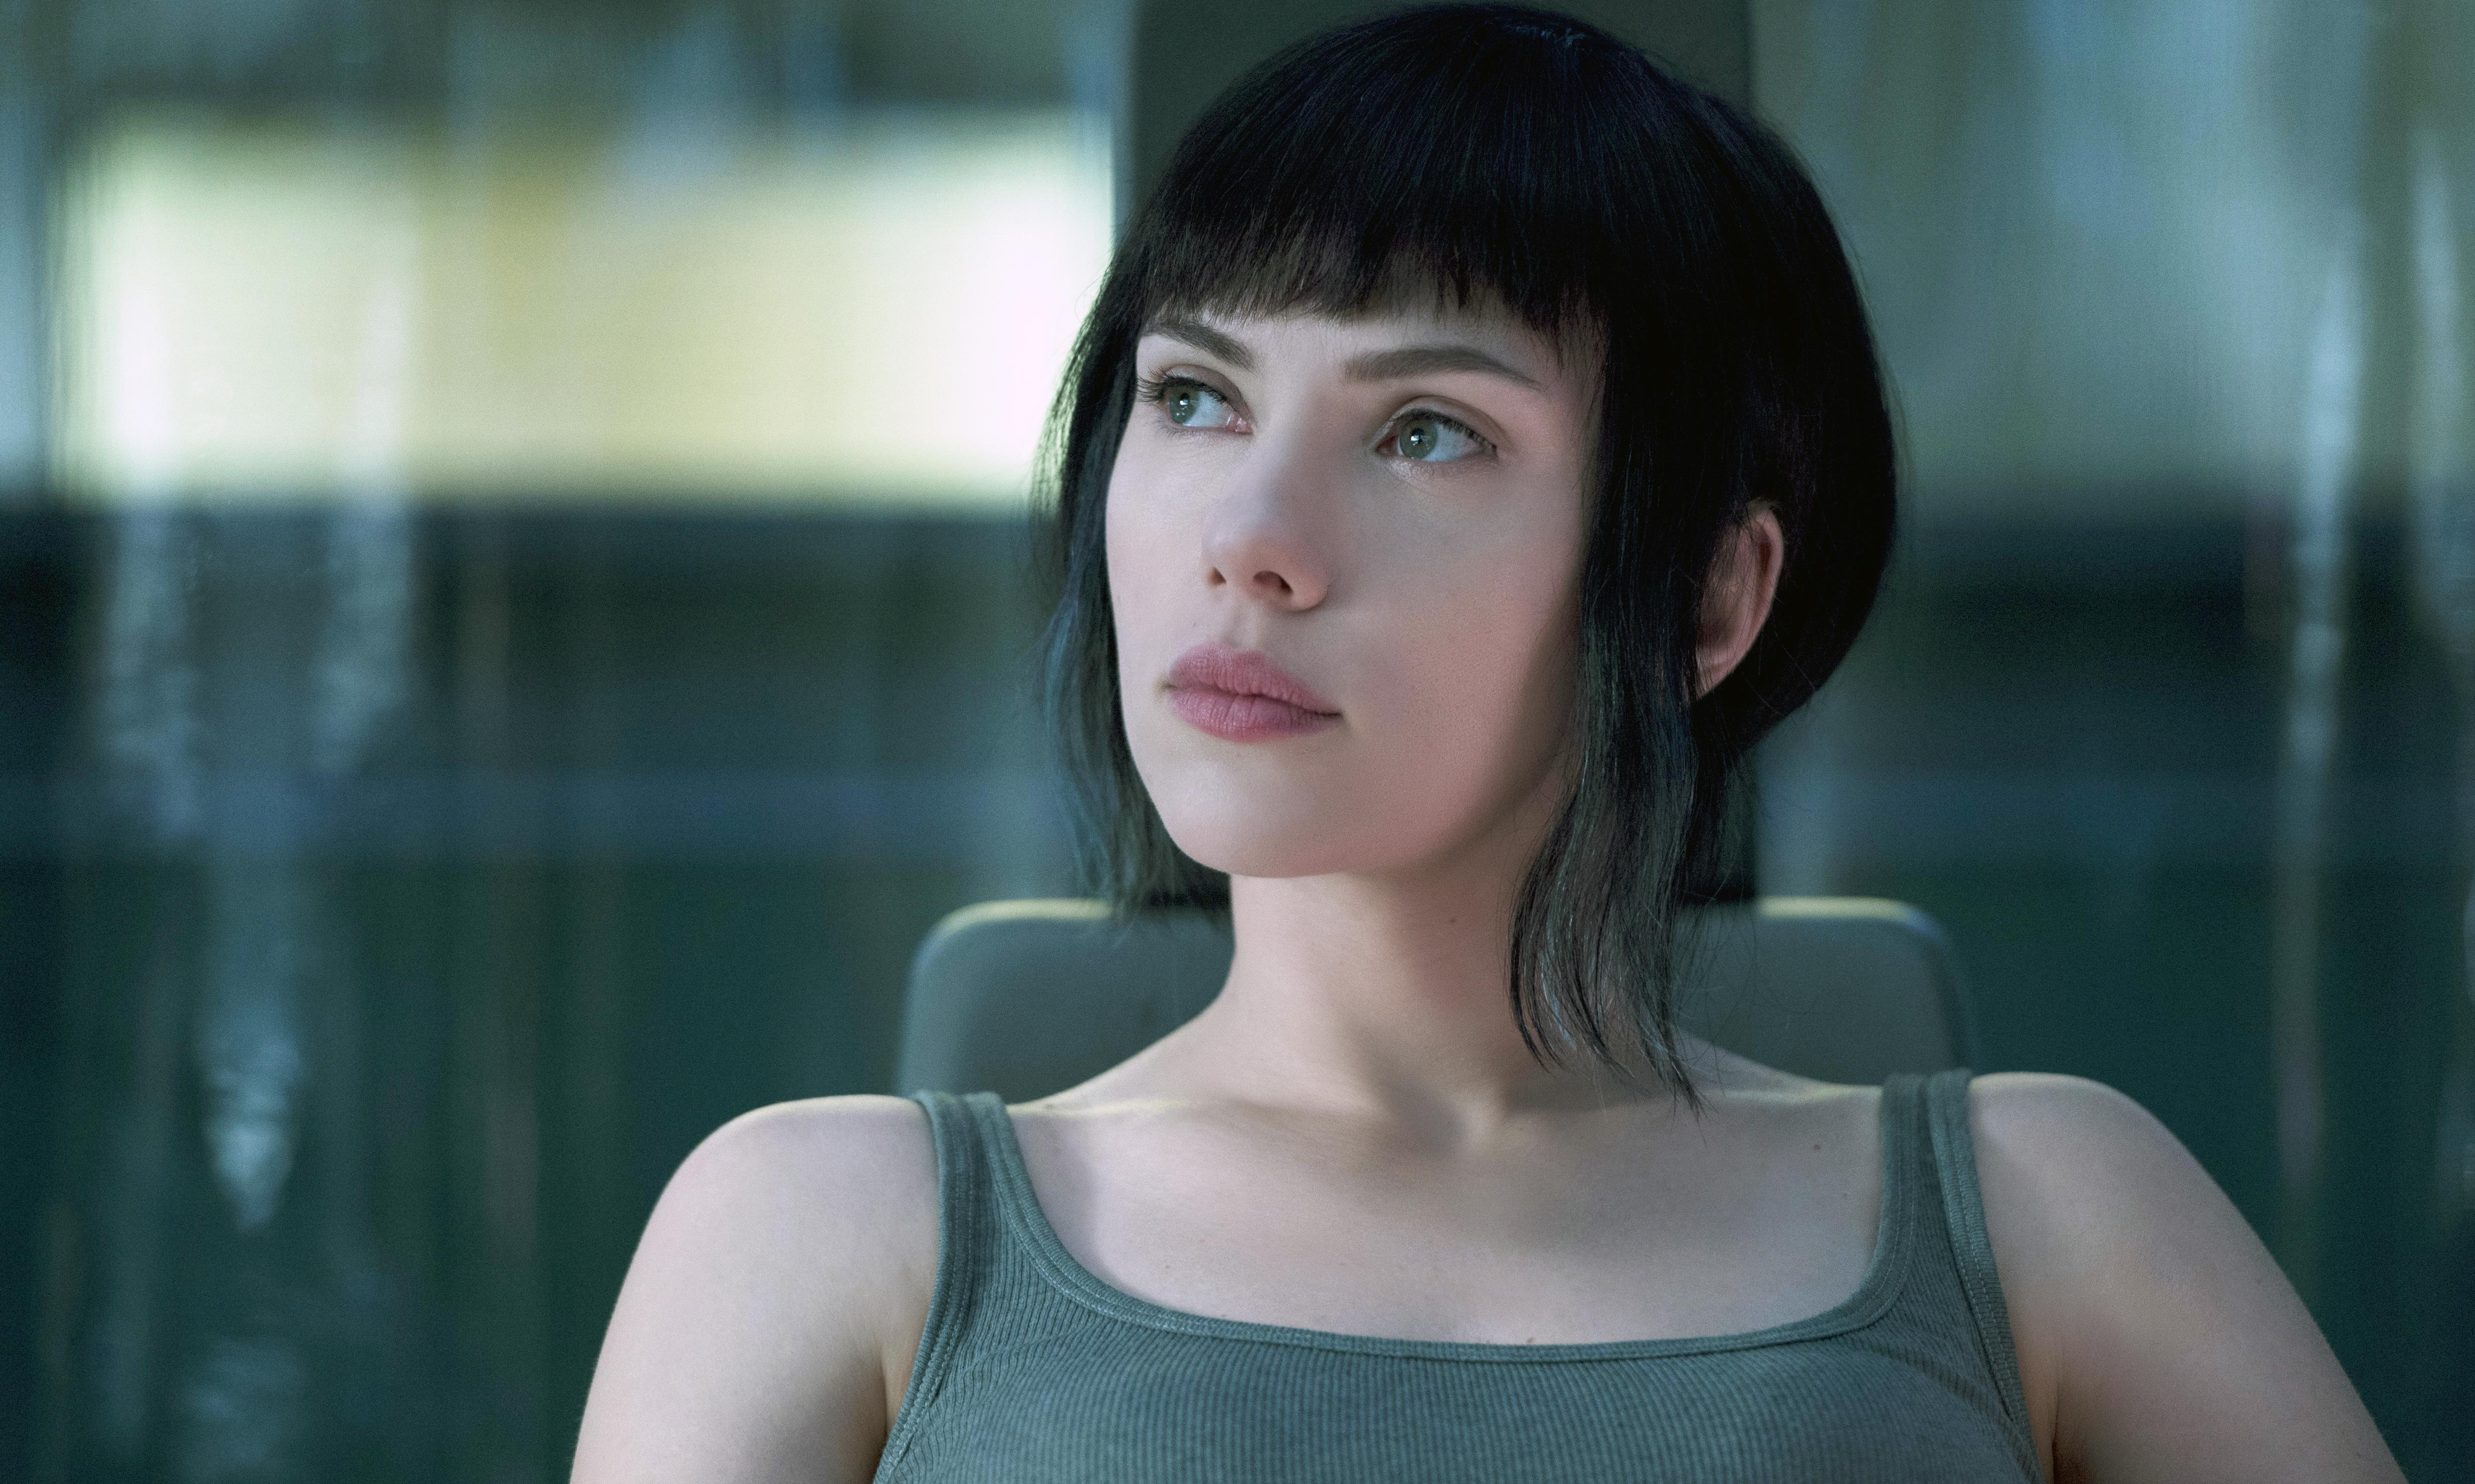 Scarlett Johansson could ideally play 'any person'. But our world is far from ideal